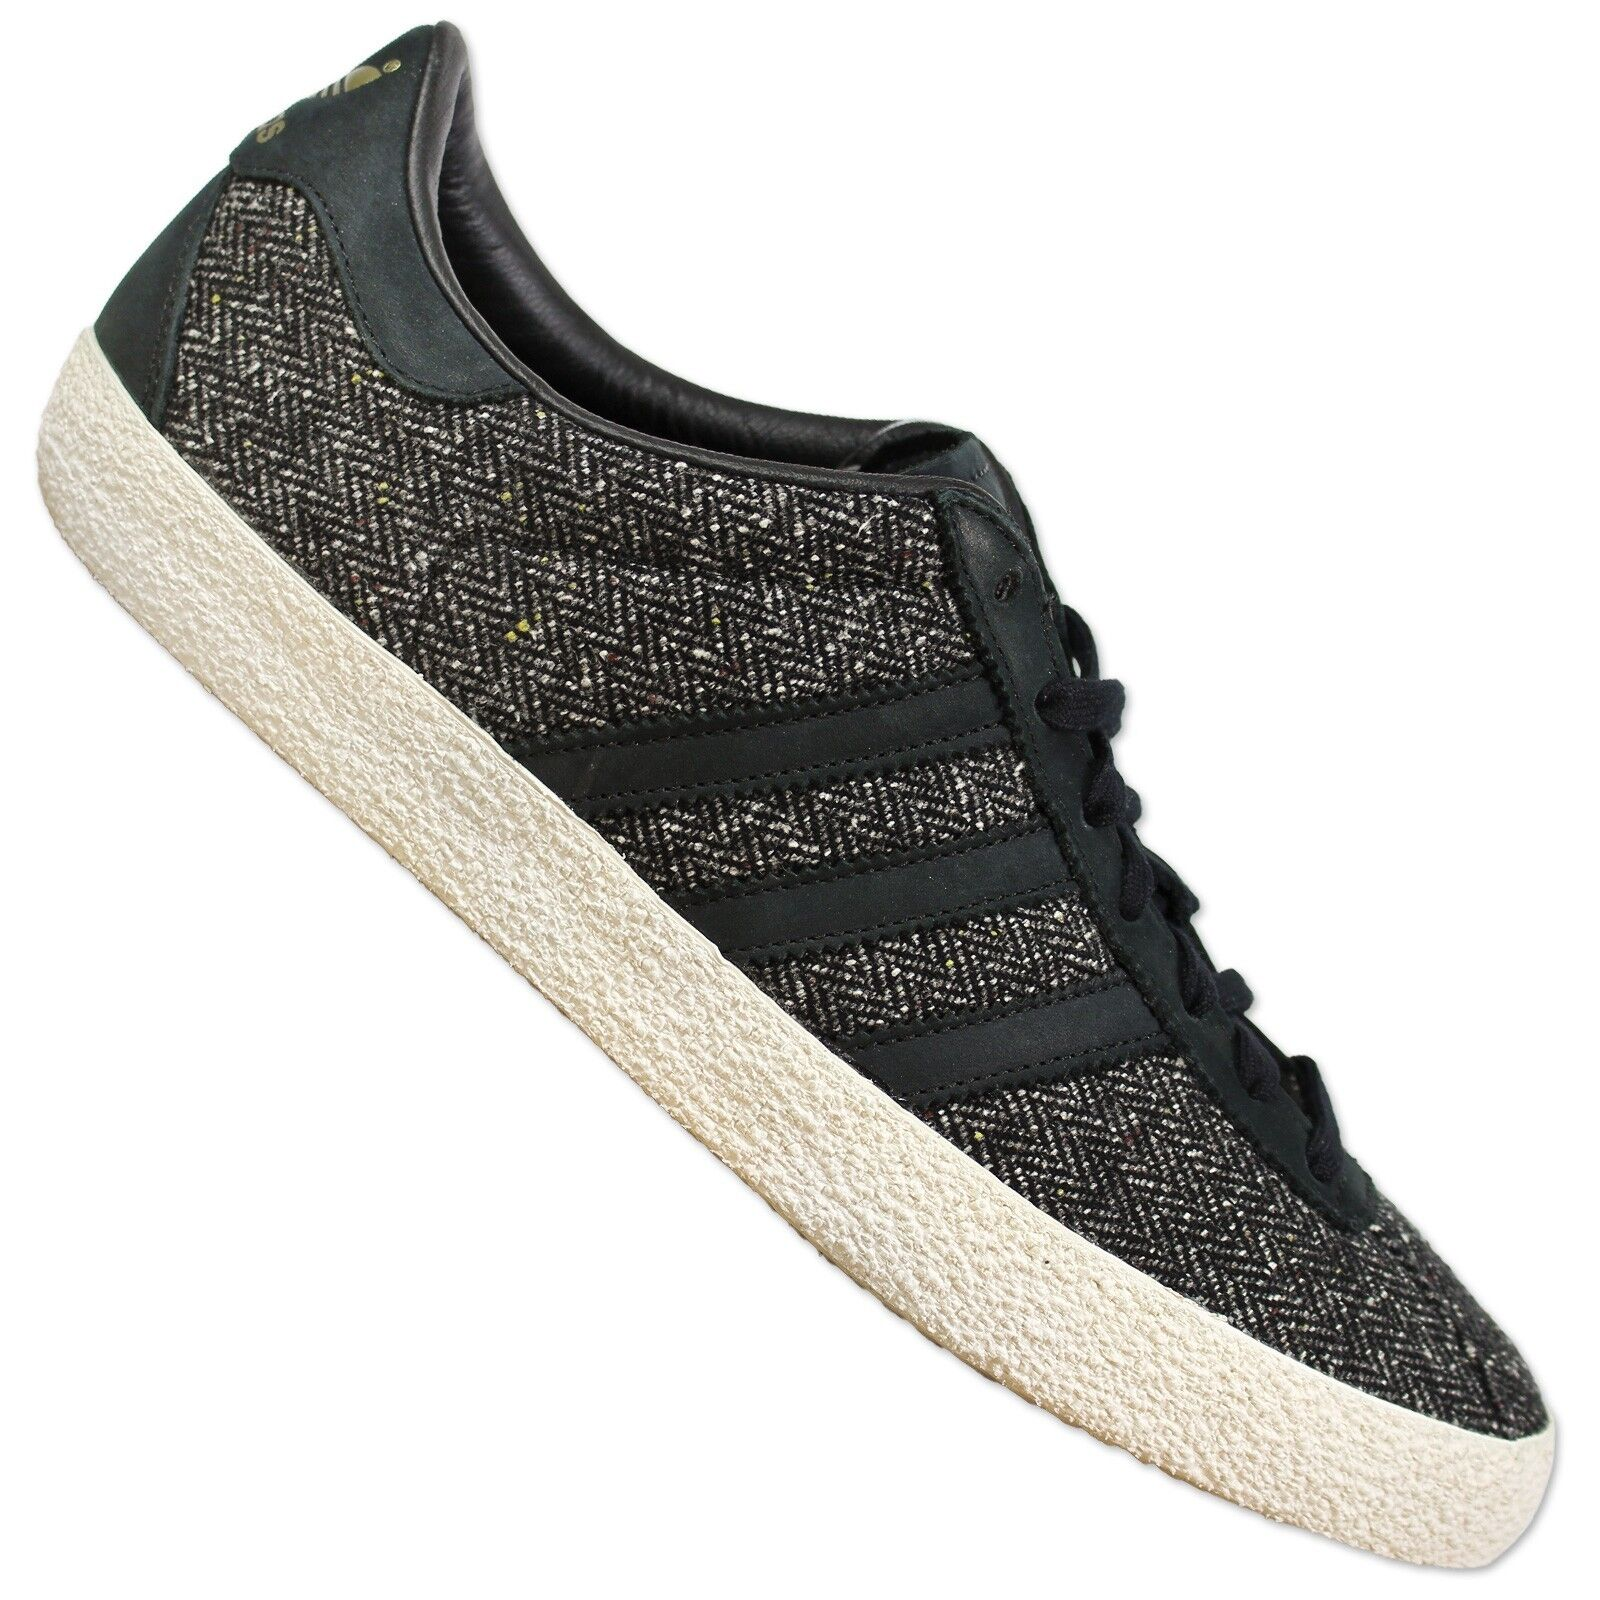 Adidas Originals Gazelle Chaussures 70 S Basket Chaussures Gazelle En Cuir Tweed noir 45 1 3 4595df